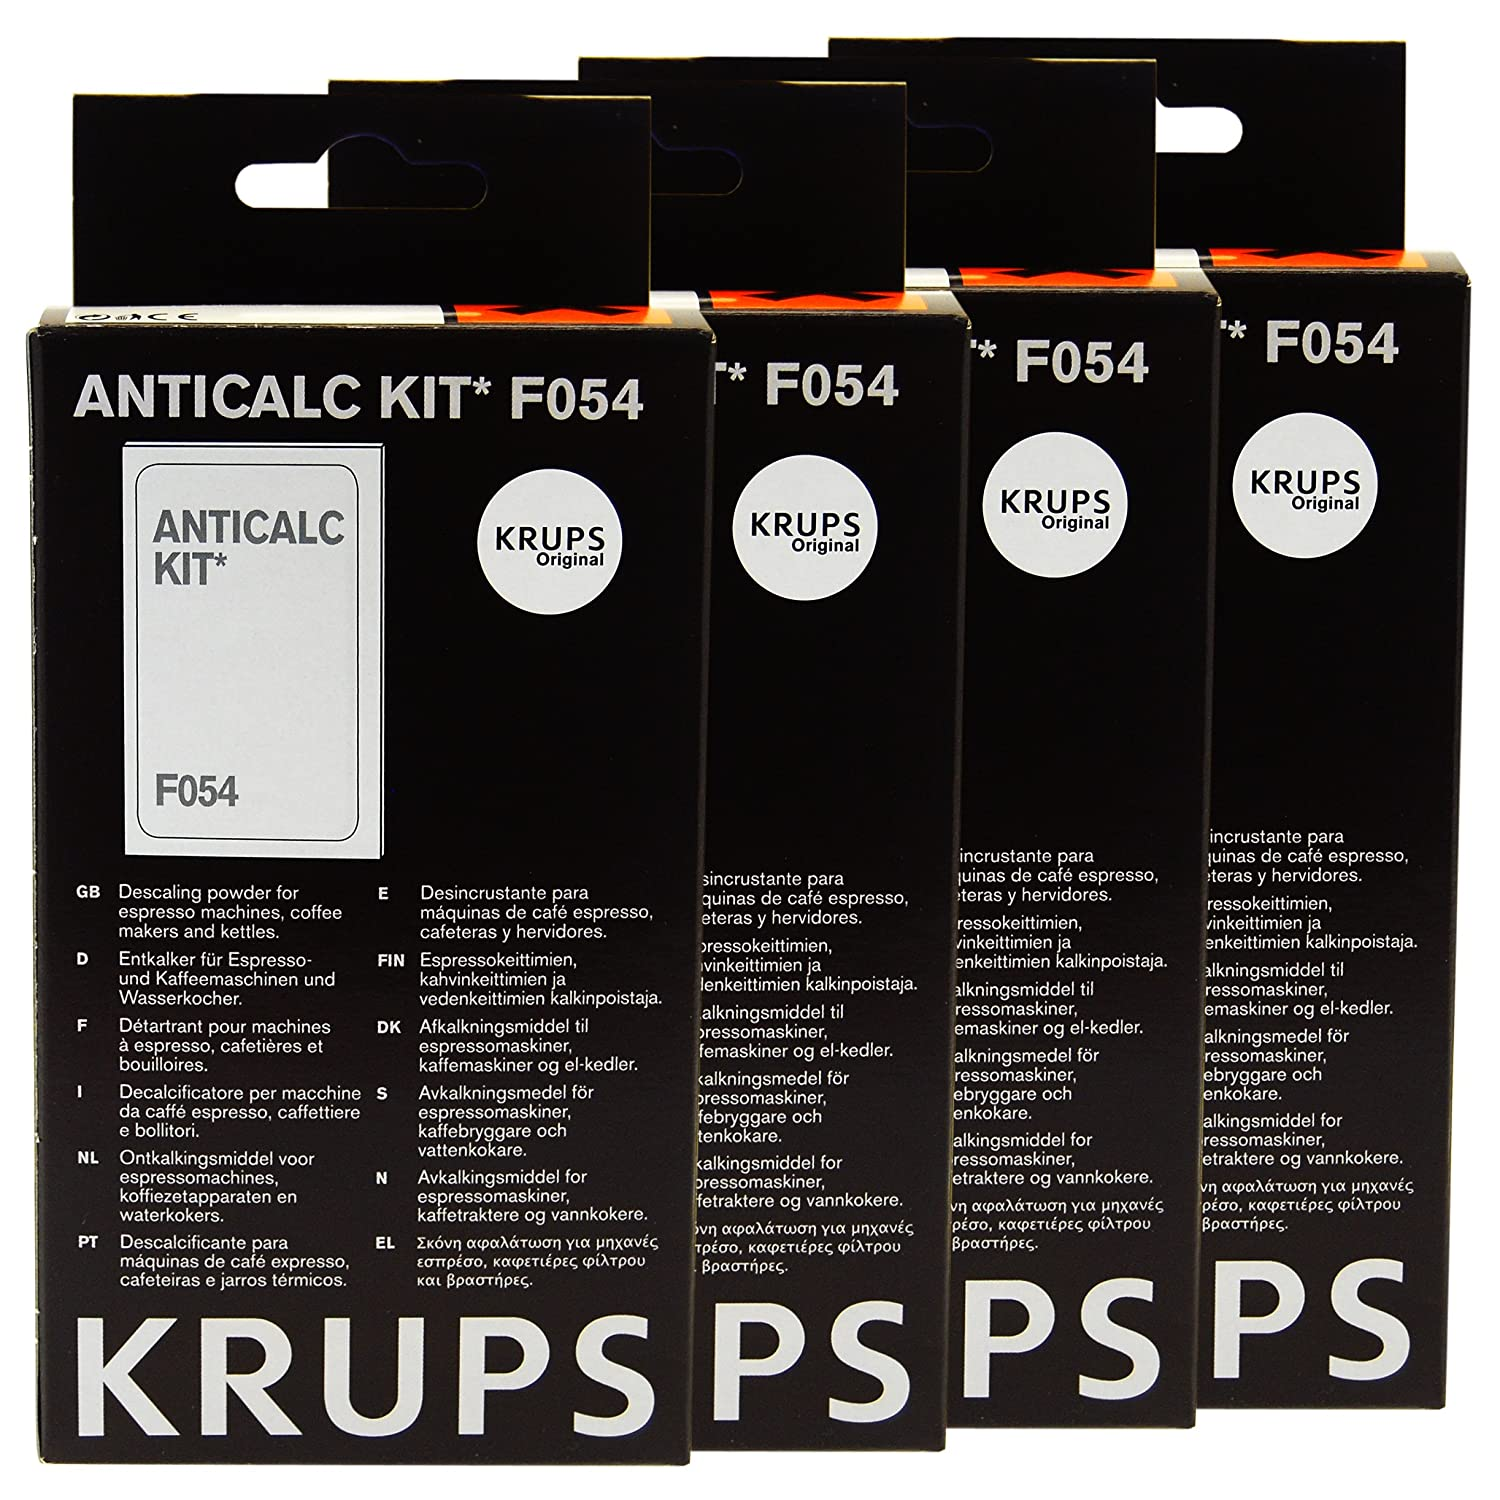 Krups Anticalc Kit* F054 Descaler, Pack of 4